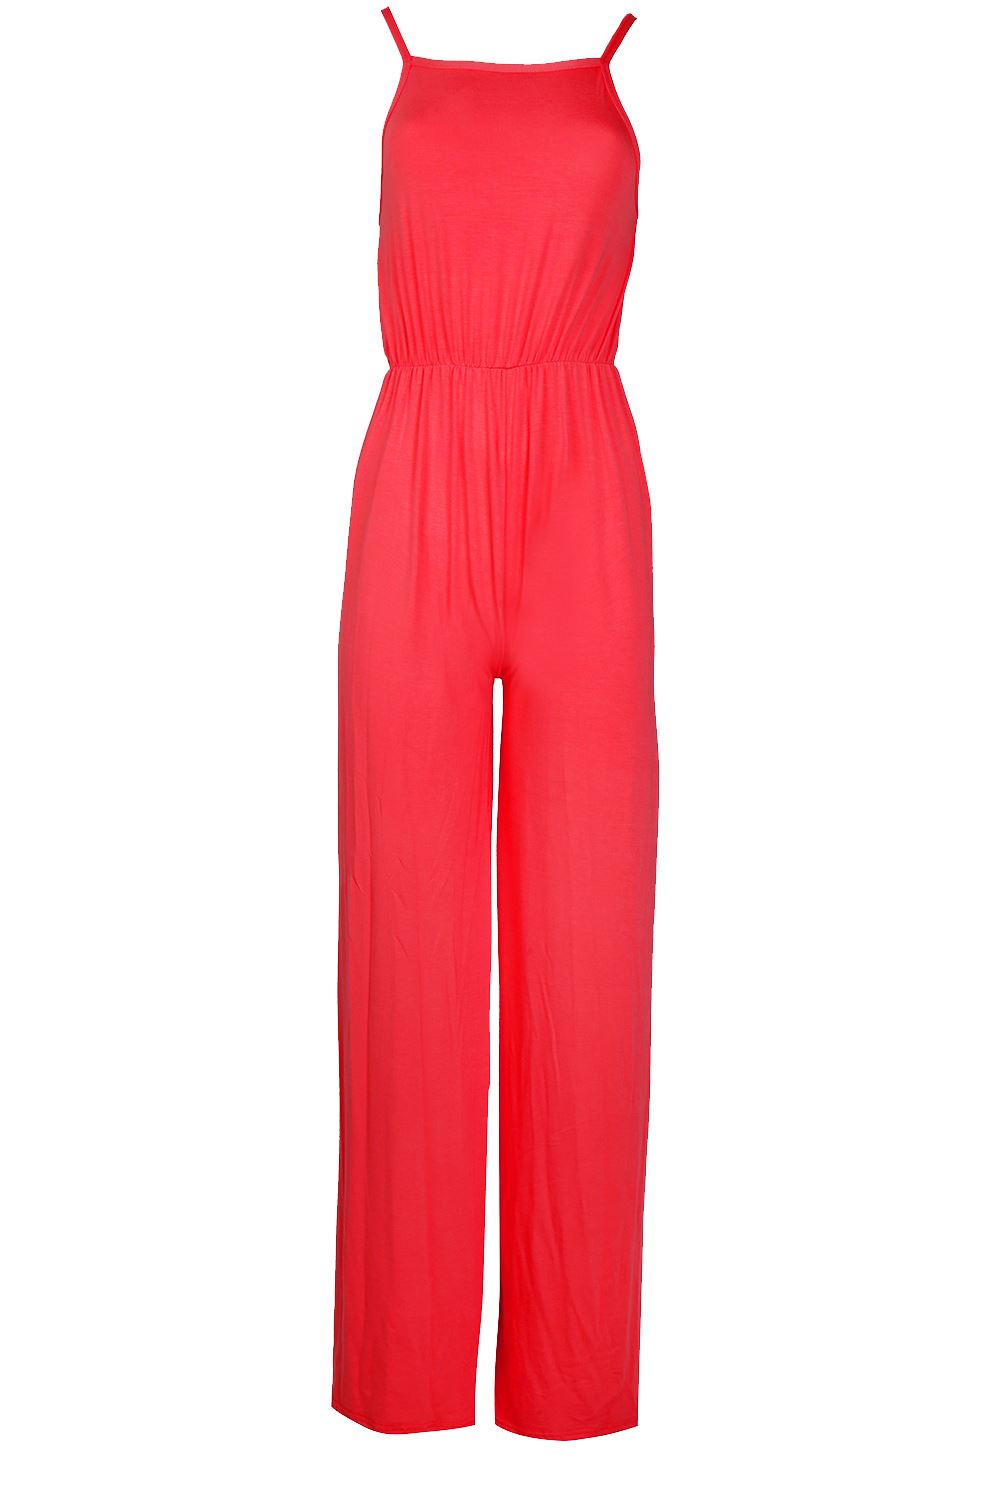 8d14571b967 Womens Ladies All In One Cami Wide Leg Palazzo Playsuit Jumpsuit ...